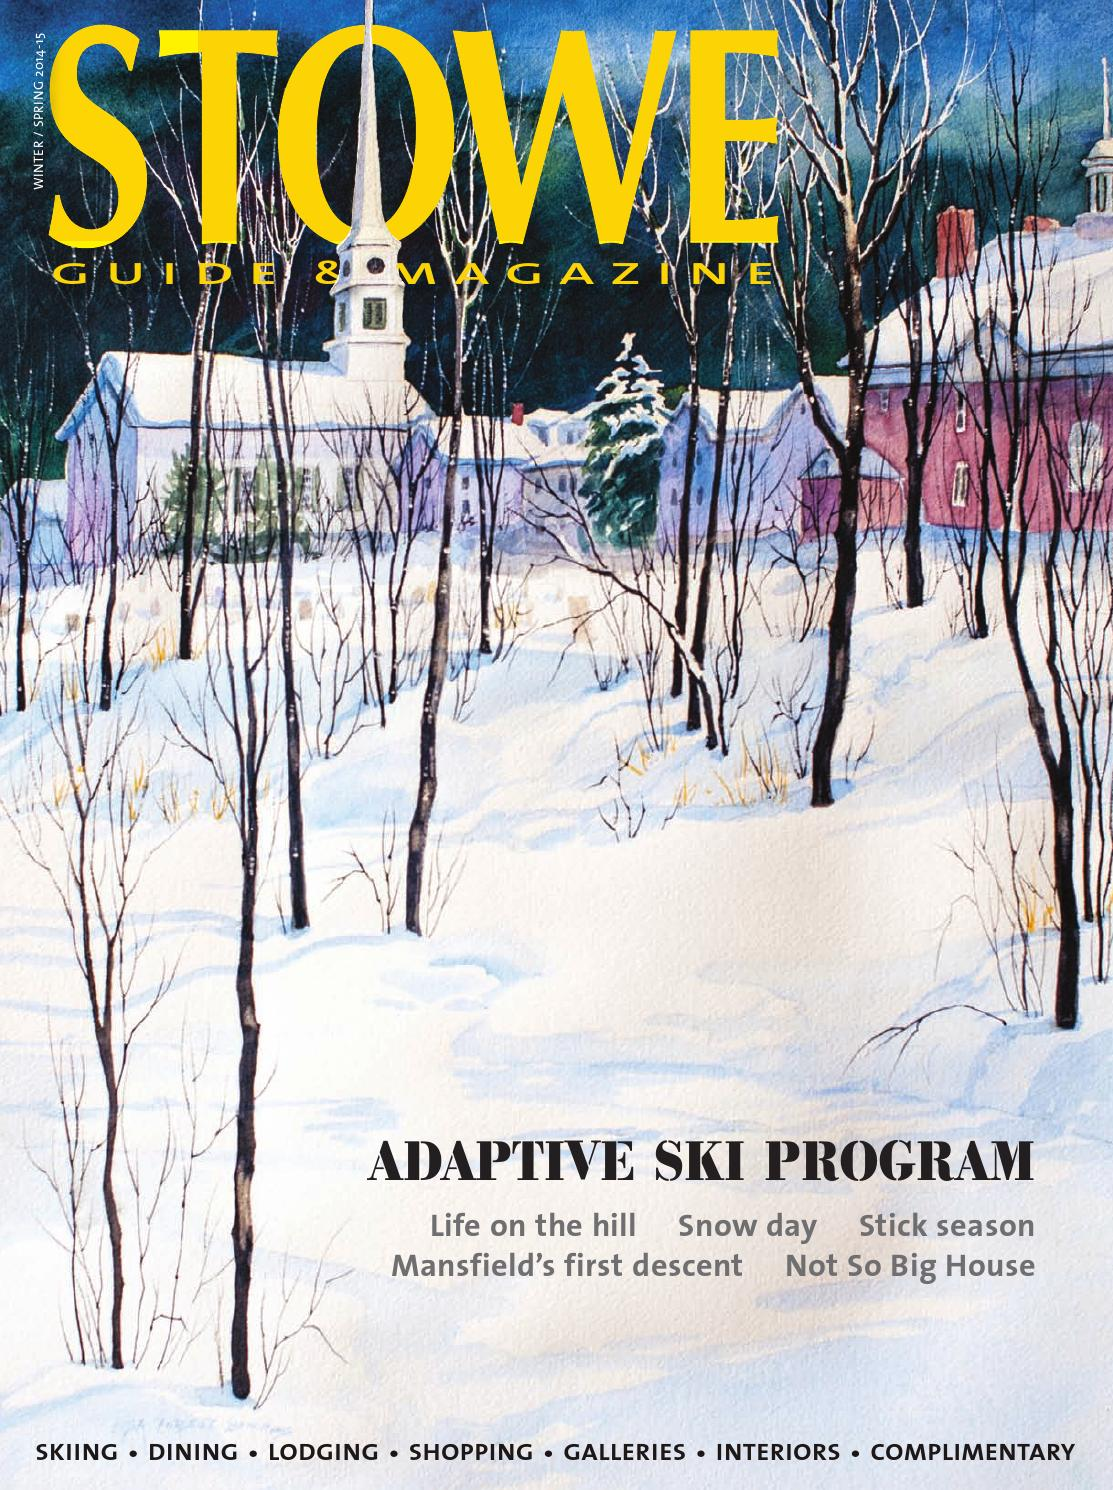 Stowe Guide Magazine Winter Spring 2014 15 By Stowe Guide Magazine Issuu